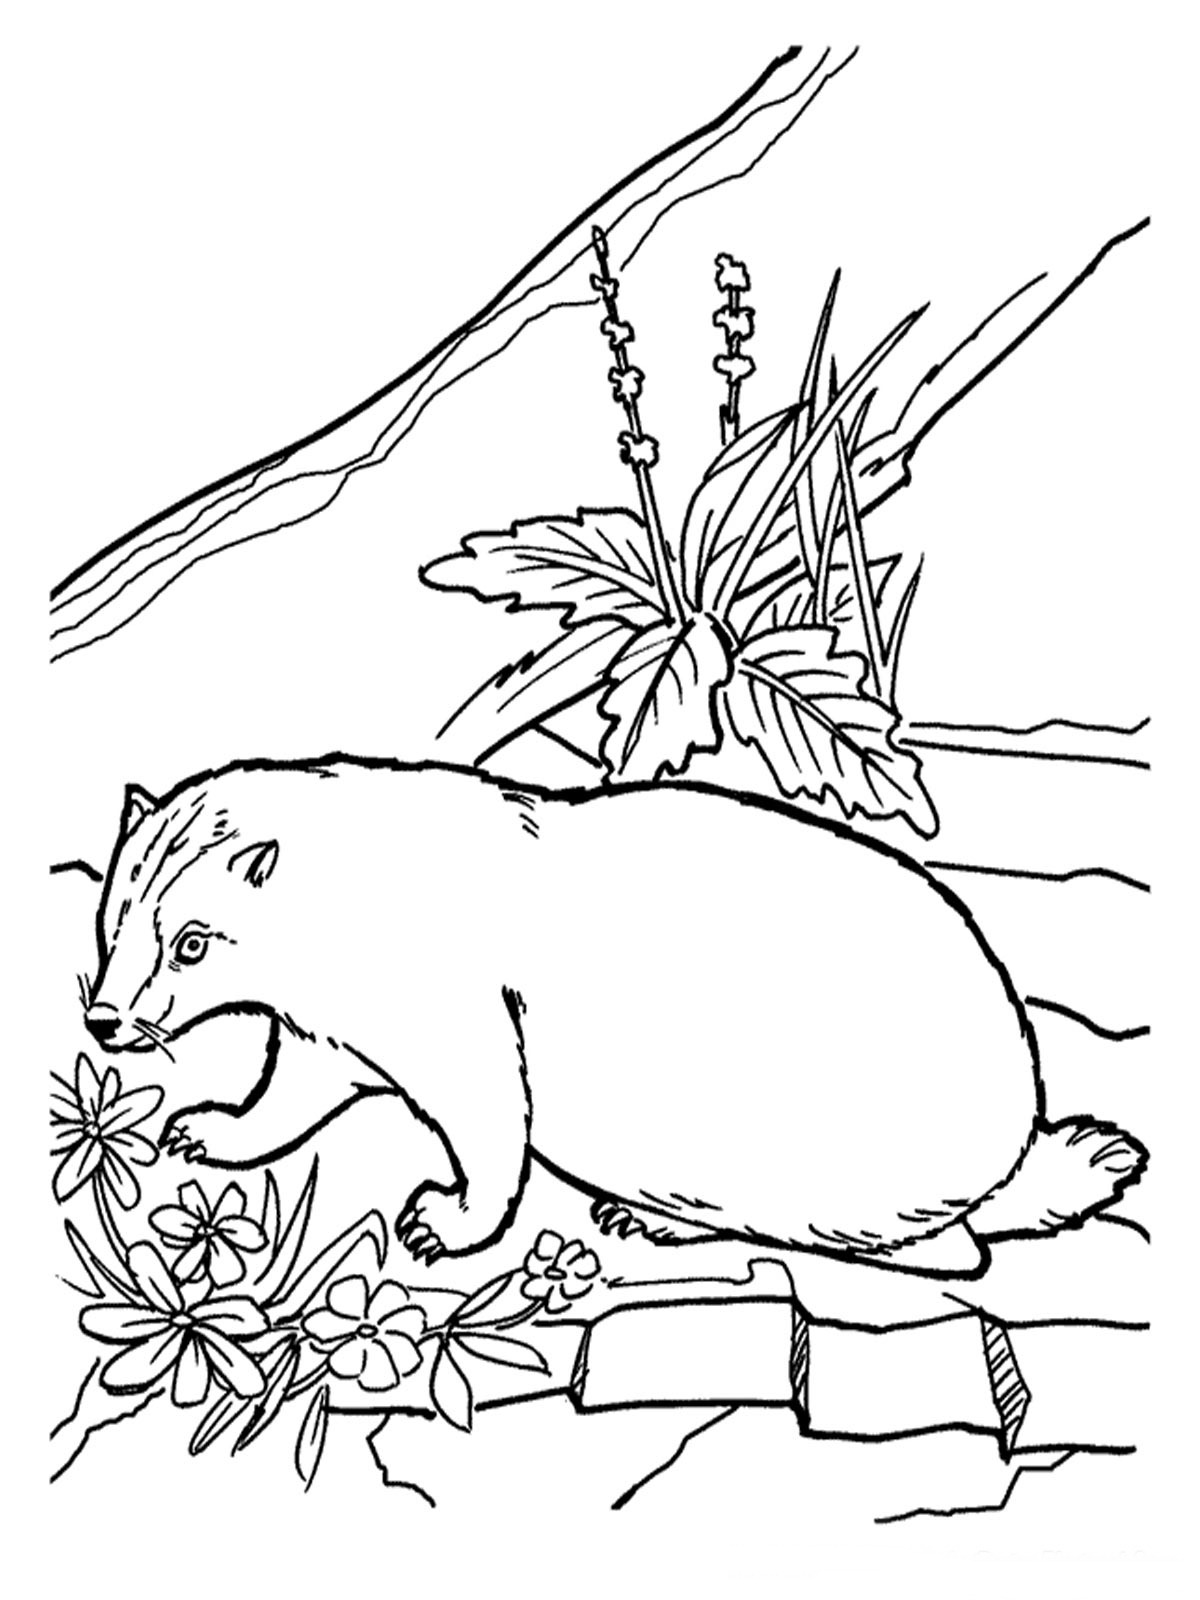 realalistic coloring pages - photo#8